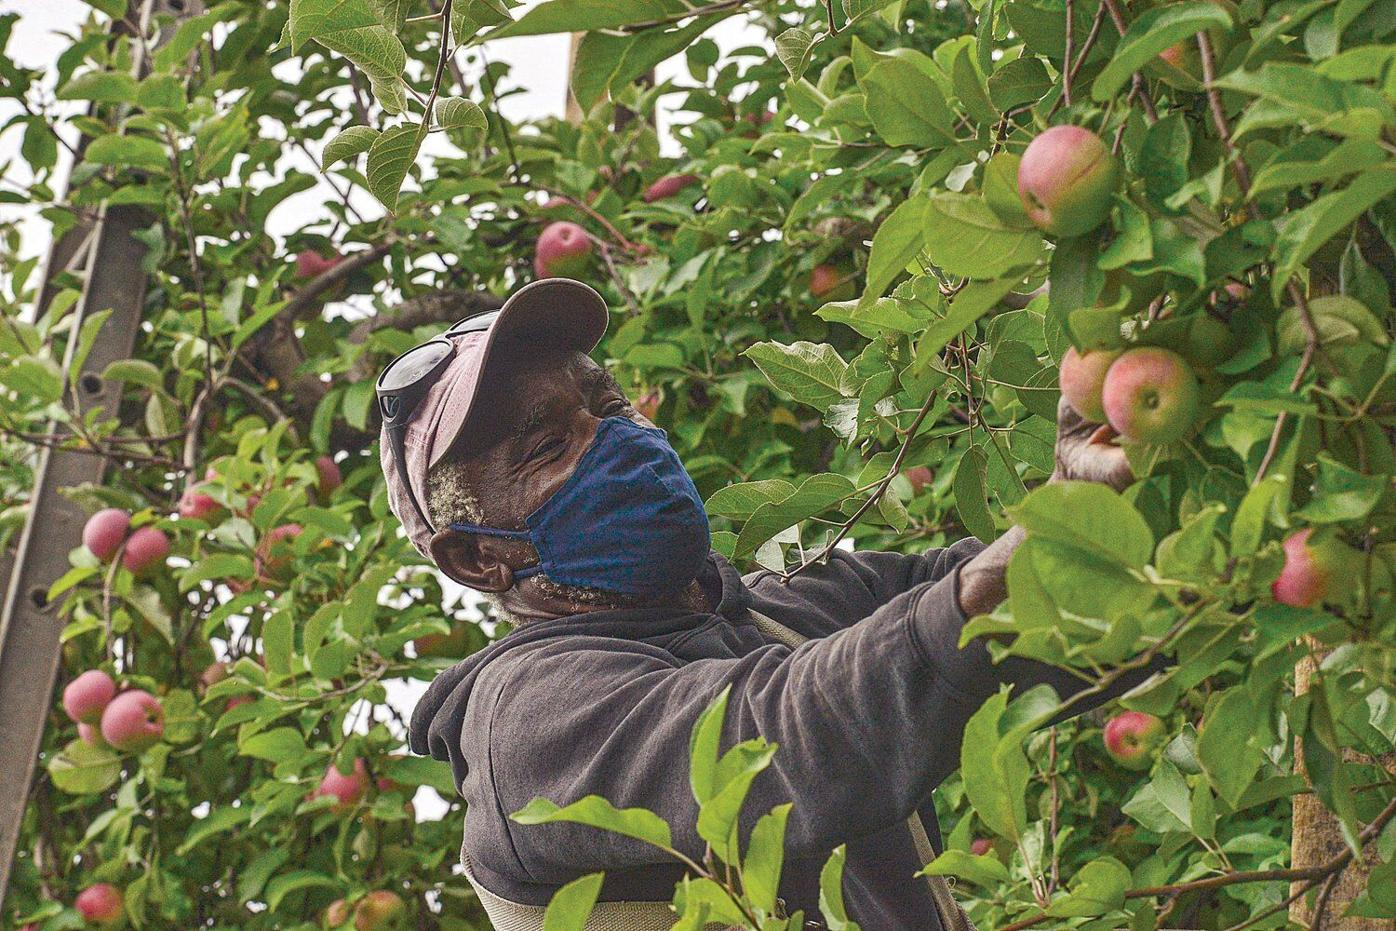 Photos: Apples by the bucket